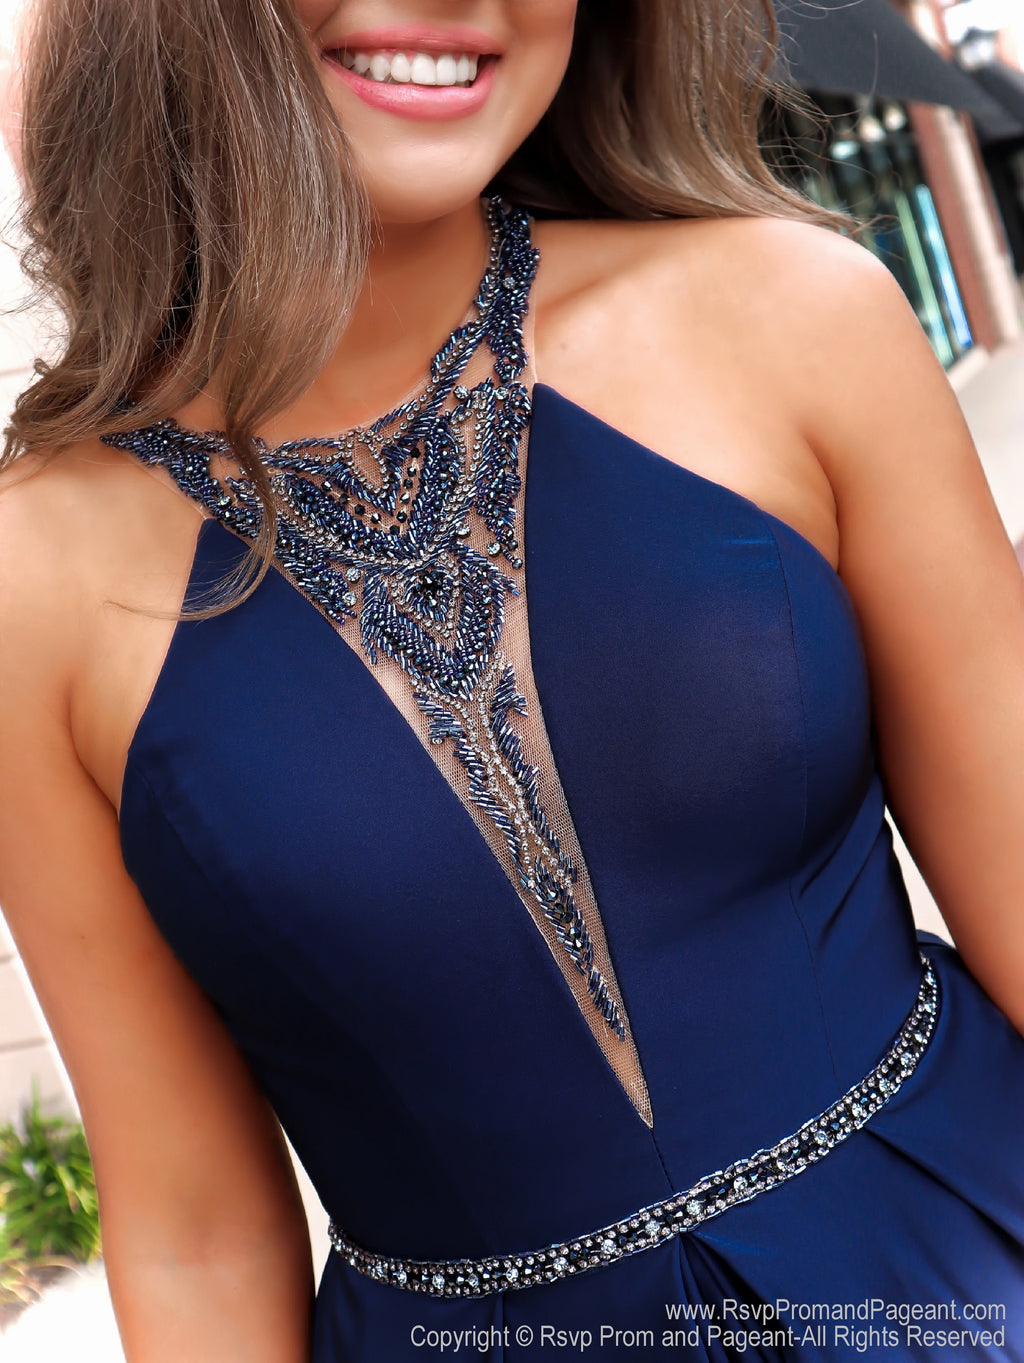 Closeup of model in a magnificent navy ball gown featuring a high neckline and beautifully detailed beading on the back! And it's at Rsvp Prom and Pageant, your source for the HOTTEST Prom and Pageant Dresses and Exclusive Evening Gowns and located in Atlanta  Georgia!